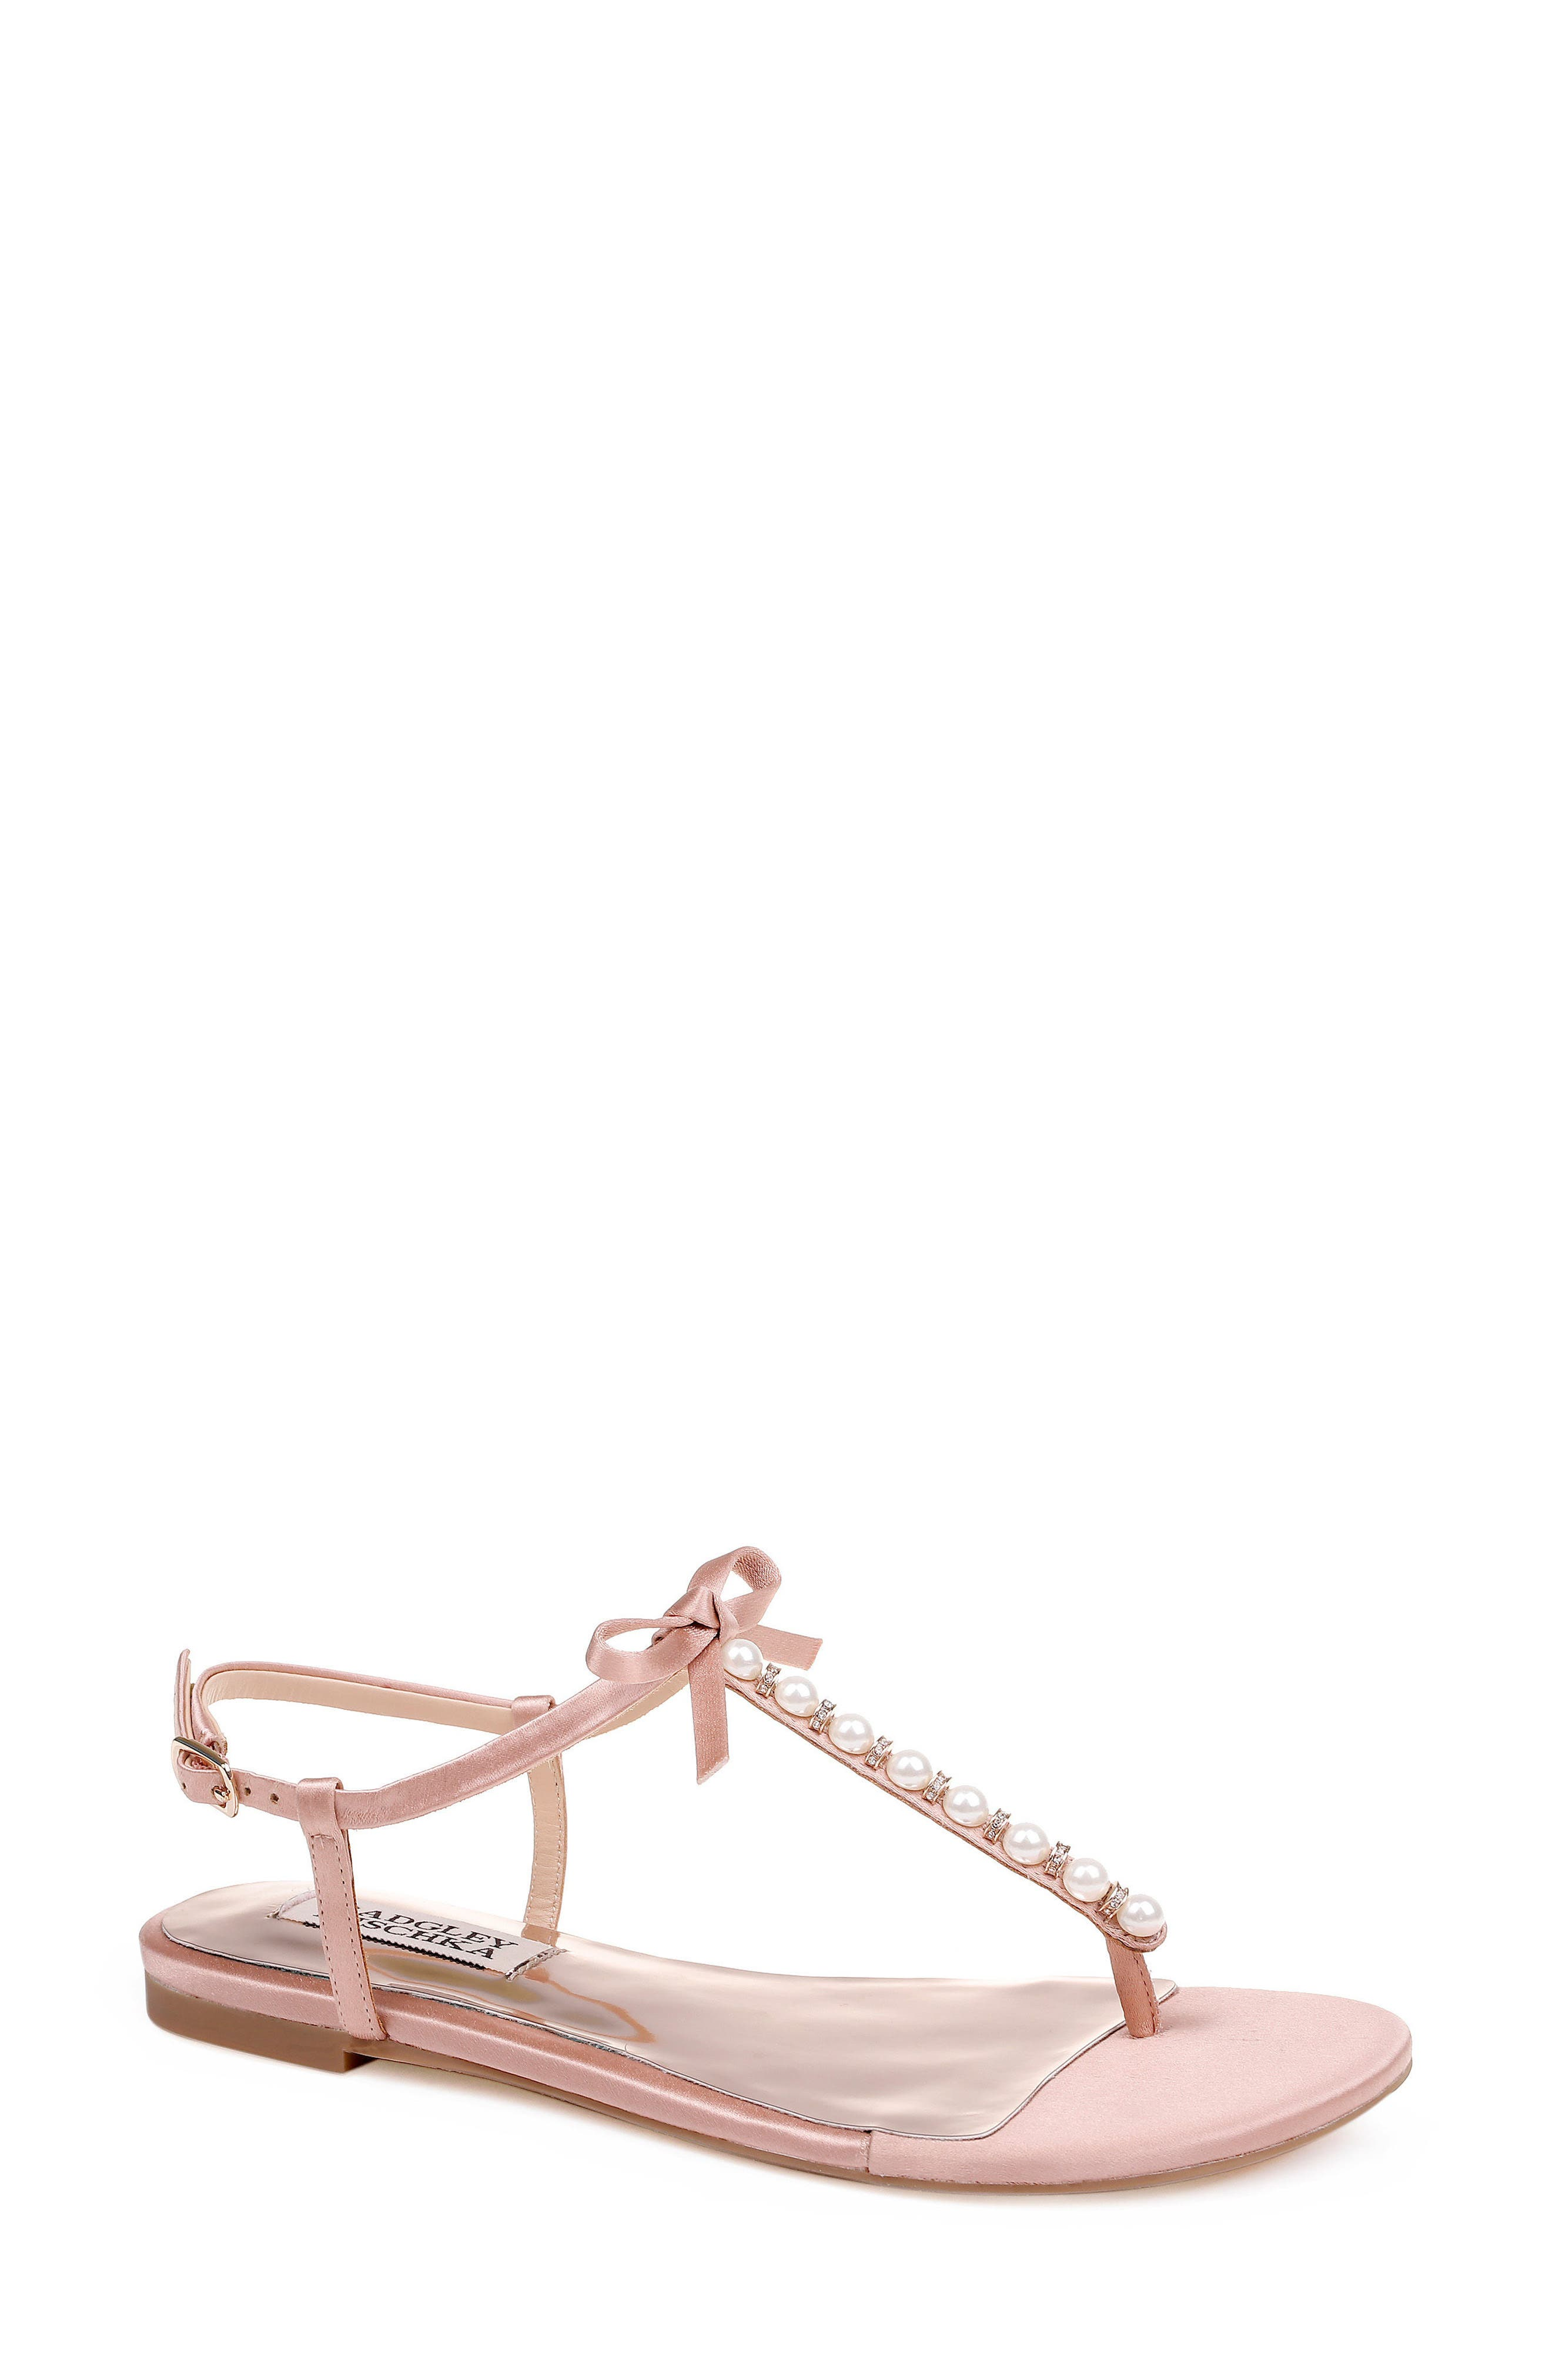 Honey Embellished Sandal,                             Main thumbnail 1, color,                             Dark Pink Satin